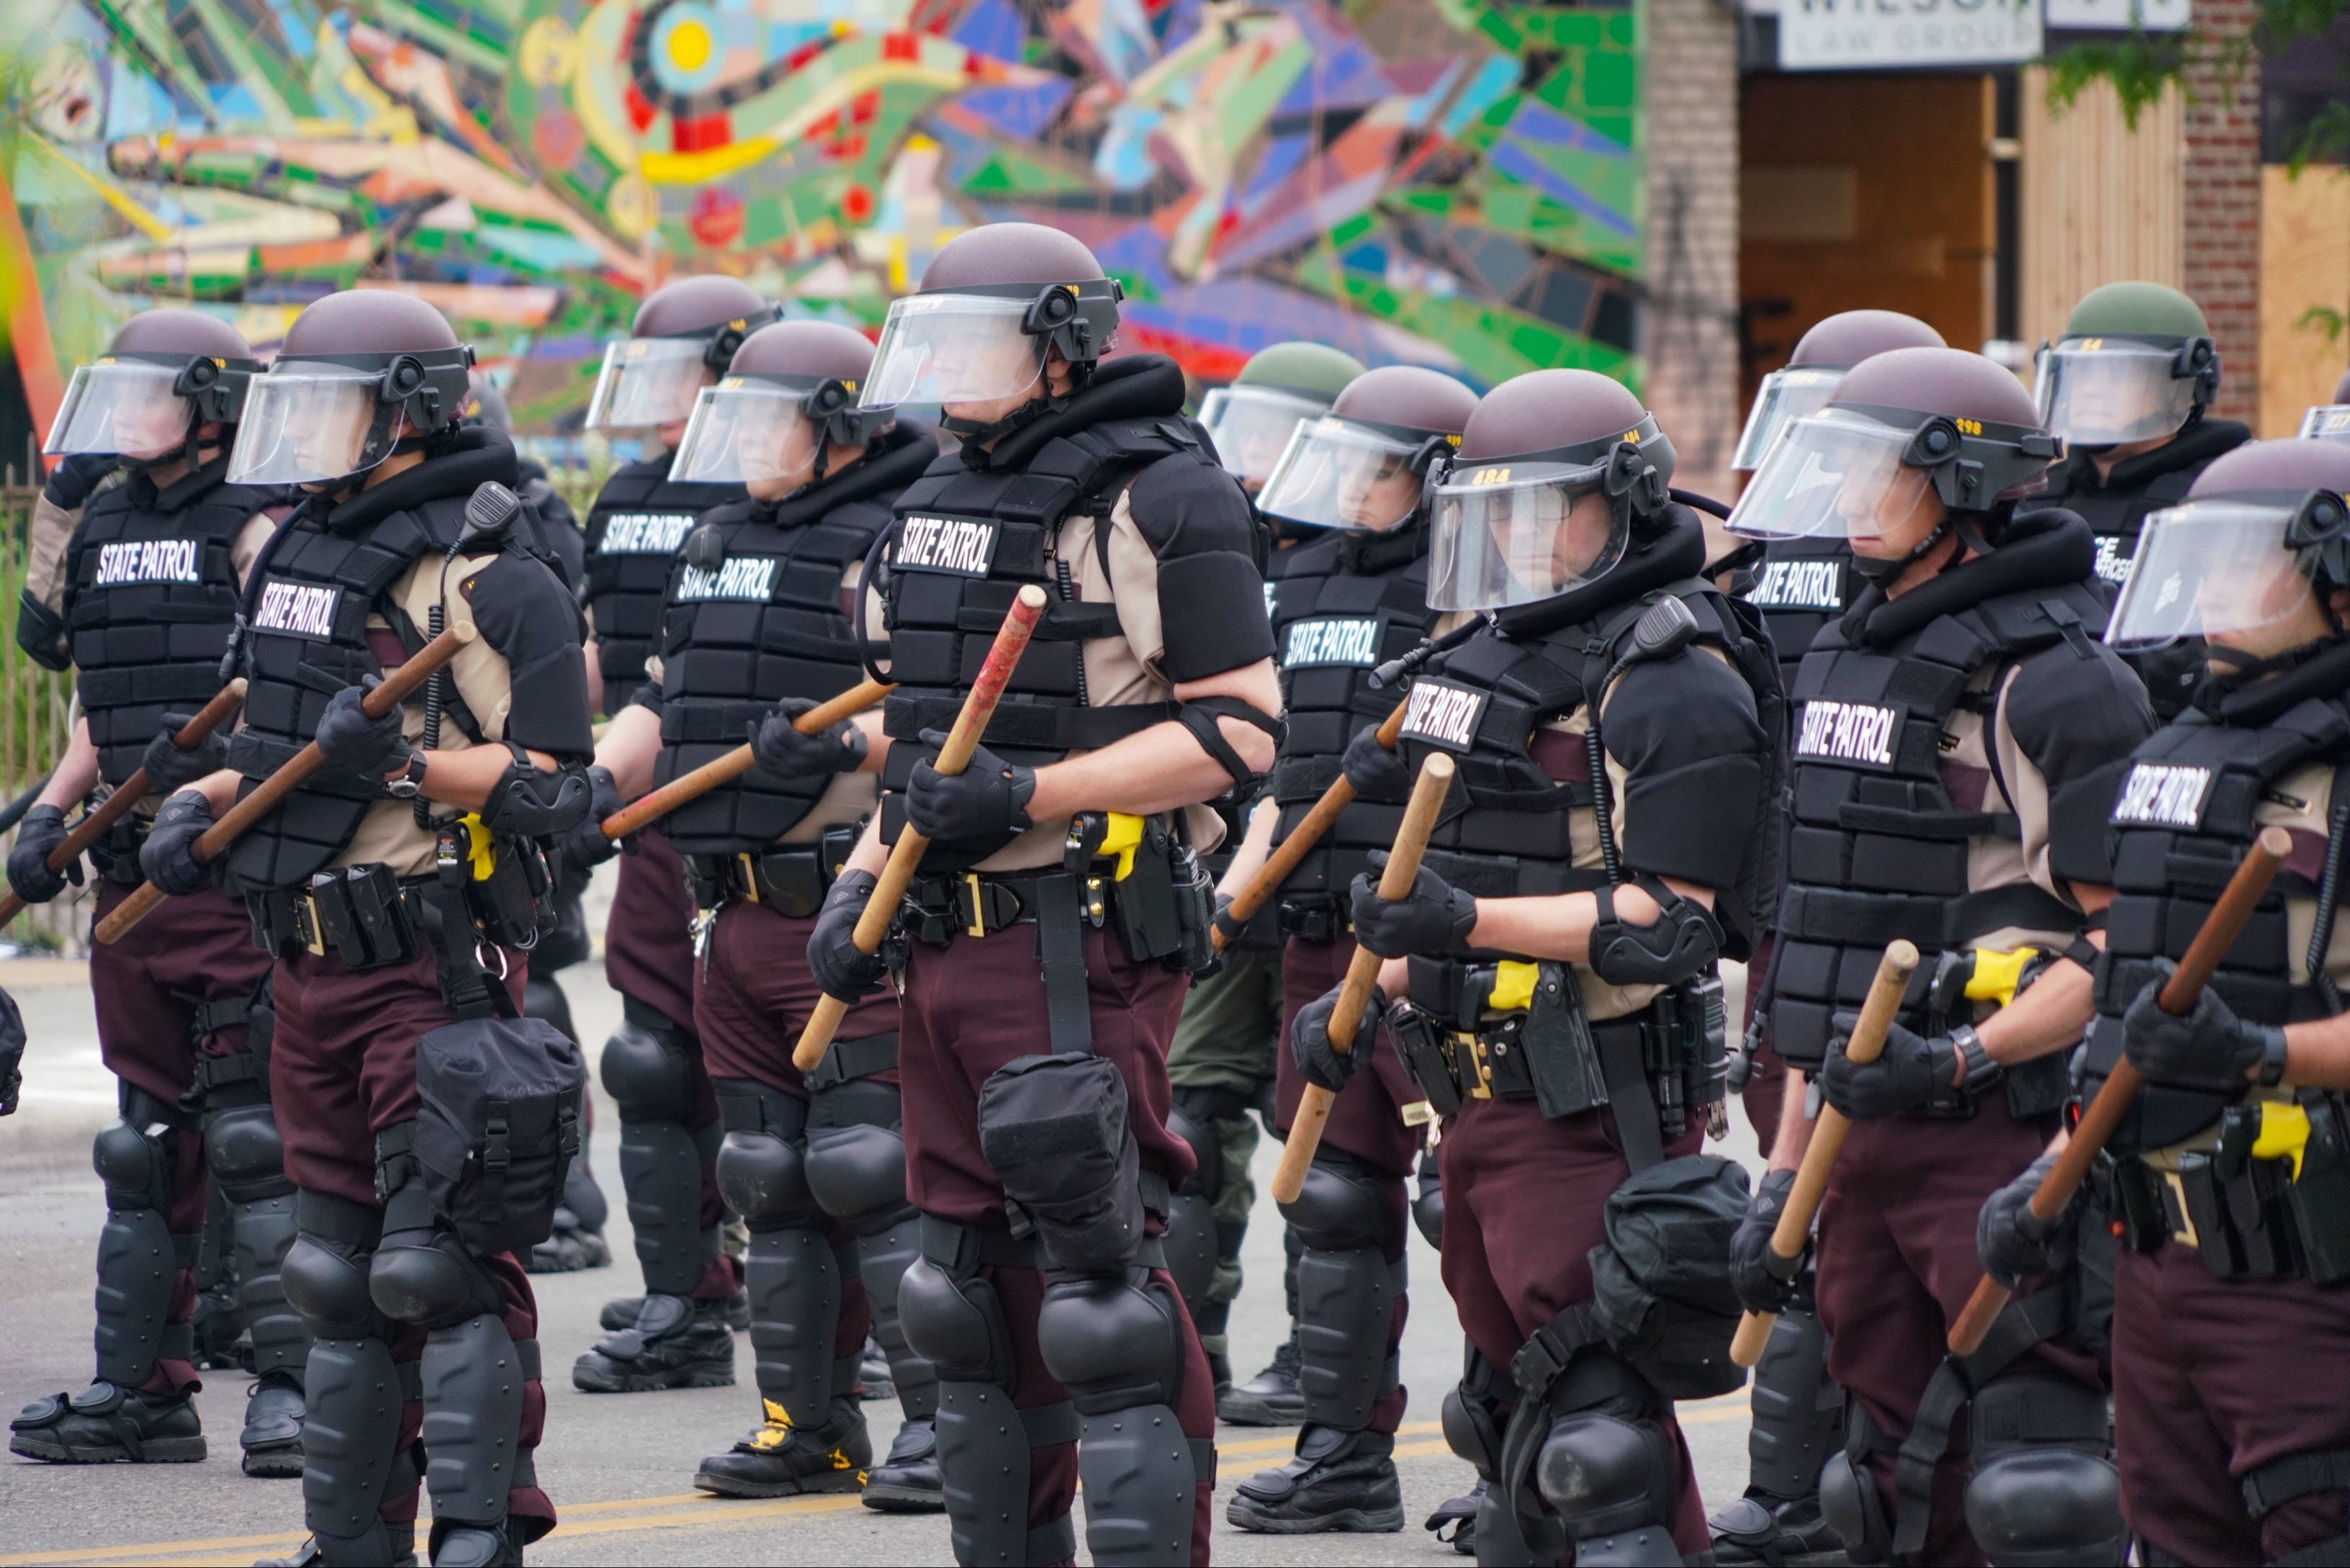 Armored members of the Minneapolis State Patrol stand guard in an intersection in front of burned out buildings in the Third Precinct of Minneapolis on Friday, May 29, 2020. The area was rocked by looting and widespread destruction overnight by protesters and rioters following peaceful gatherings for most of the day. Protesters were demanding justice for the death of George Floyd, who died after a white police officer knelt on his neck.